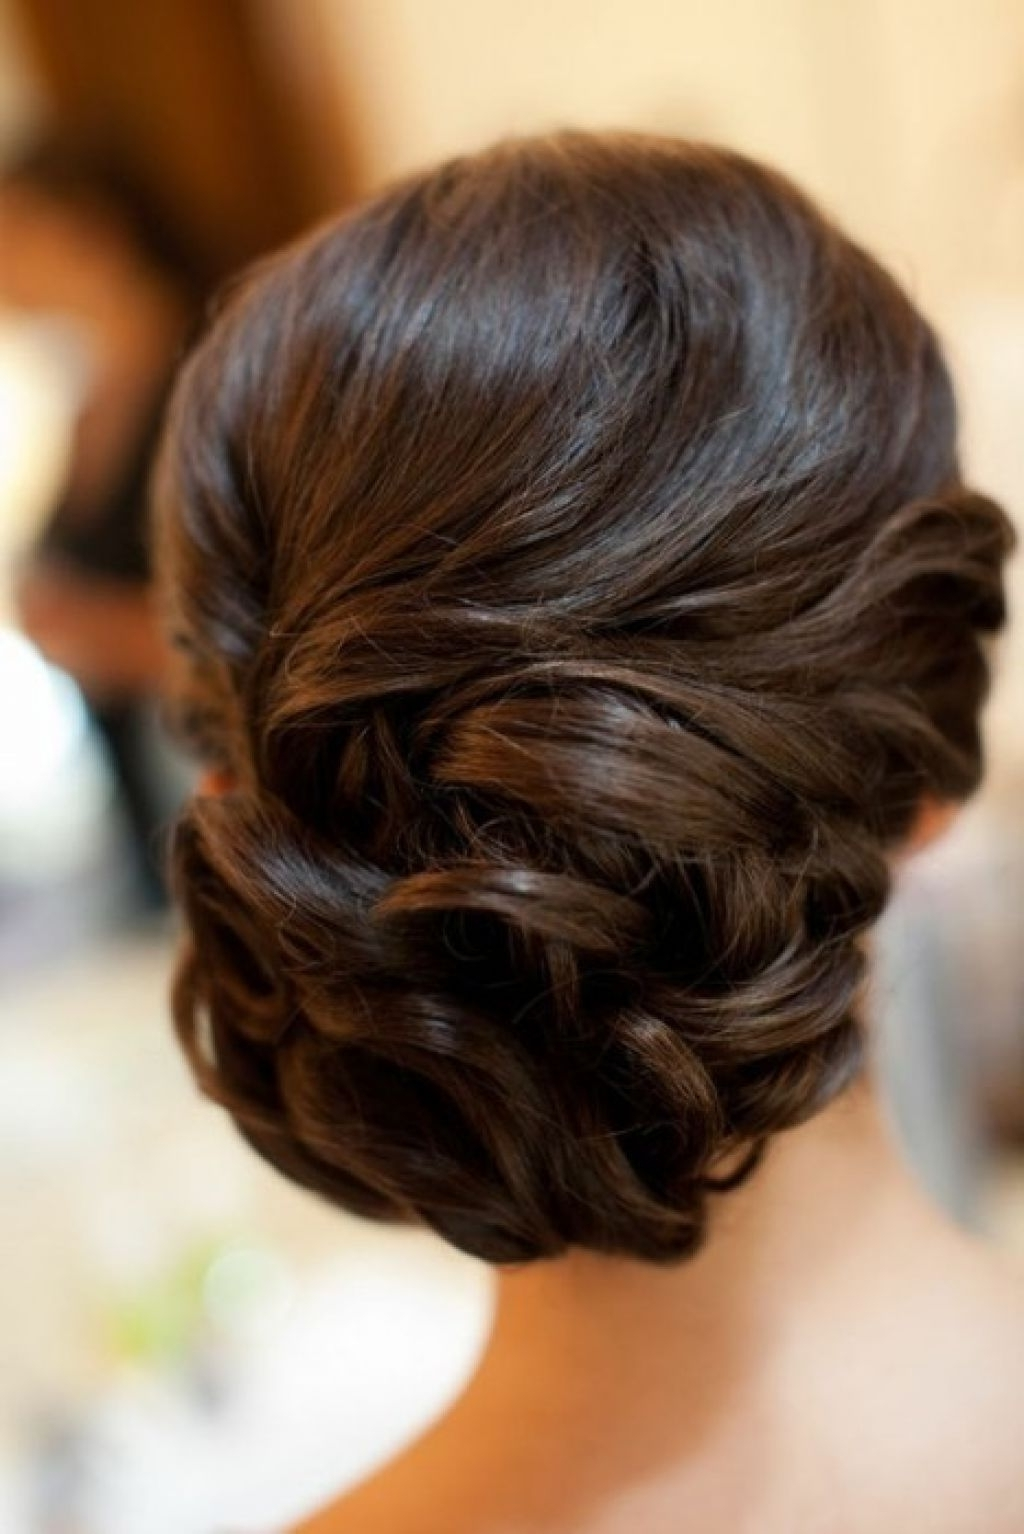 2017 Bridal Updo Hairstyles For Medium Length Hair Intended For Hair Dosr Wedding Wdding Hairdos Mdium Lovely Hairstyles Updos (View 9 of 15)